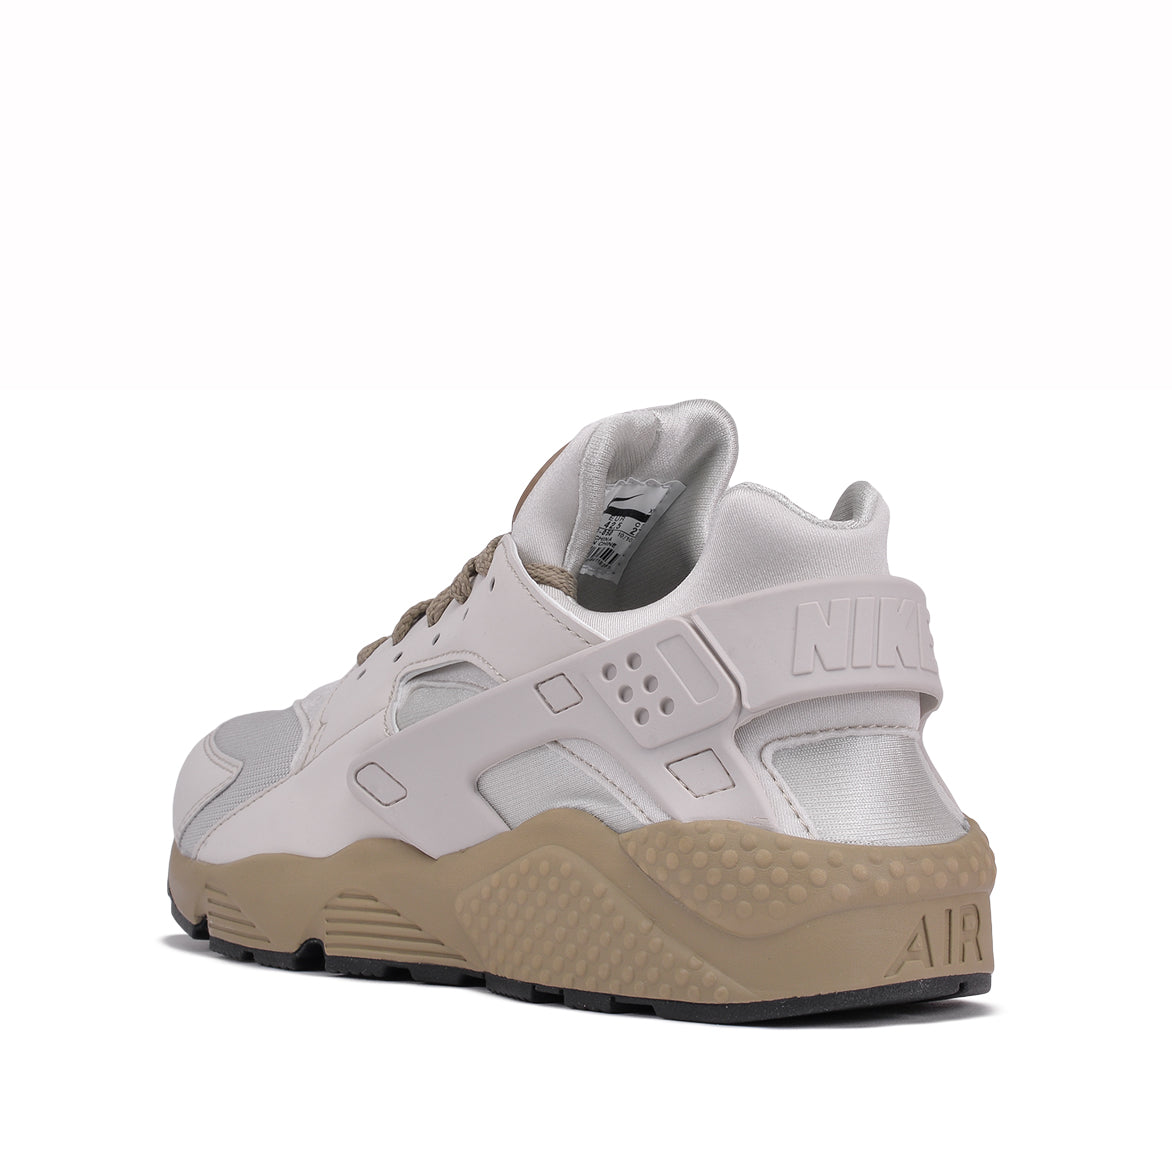 AIR HUARACHE - LIGHT BONE